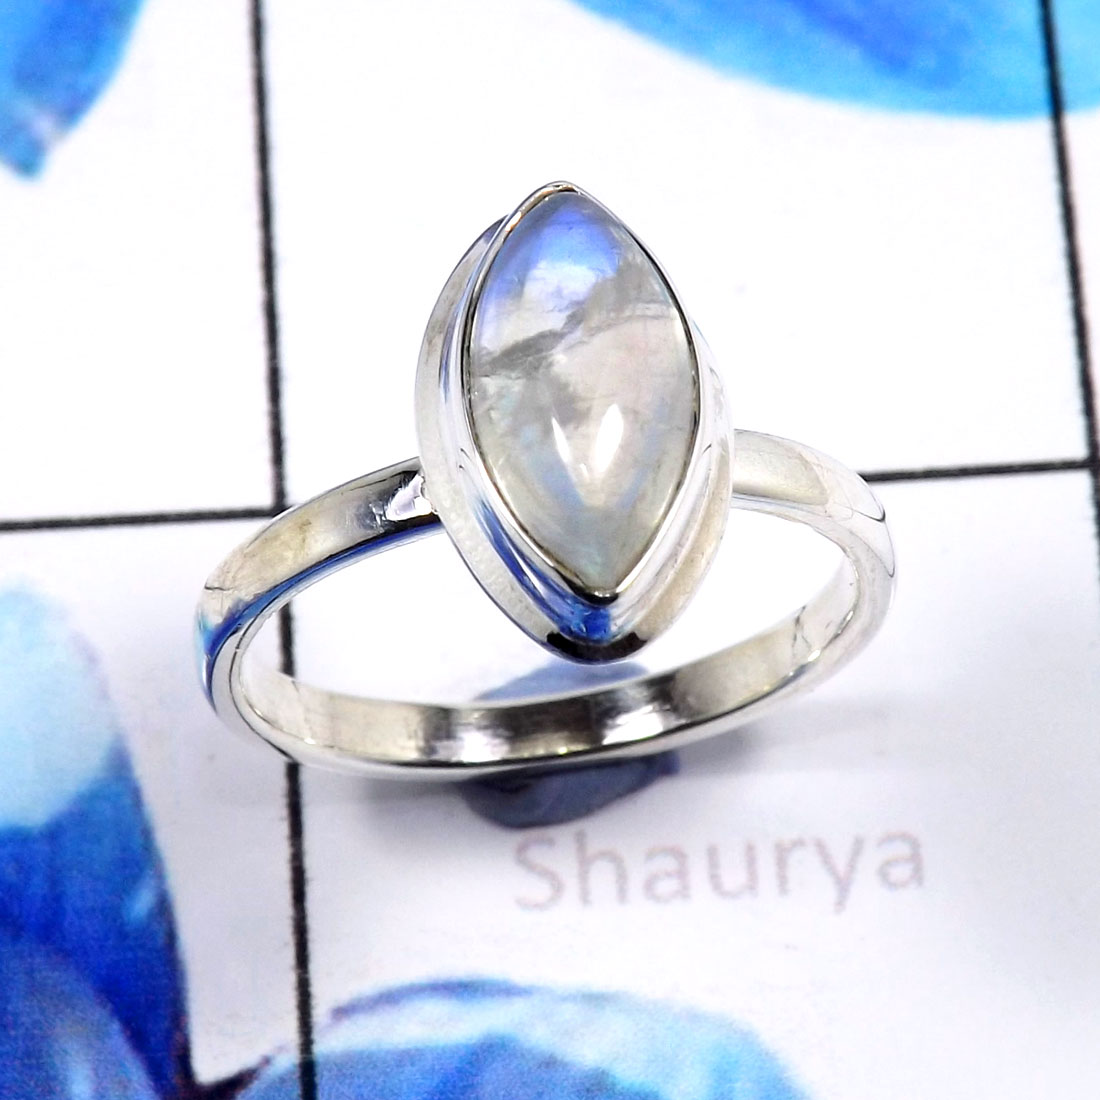 Rainbow Moonstone B - STK952-Beautiful Wholesale Handmade Fashionable Stacking Rings 9